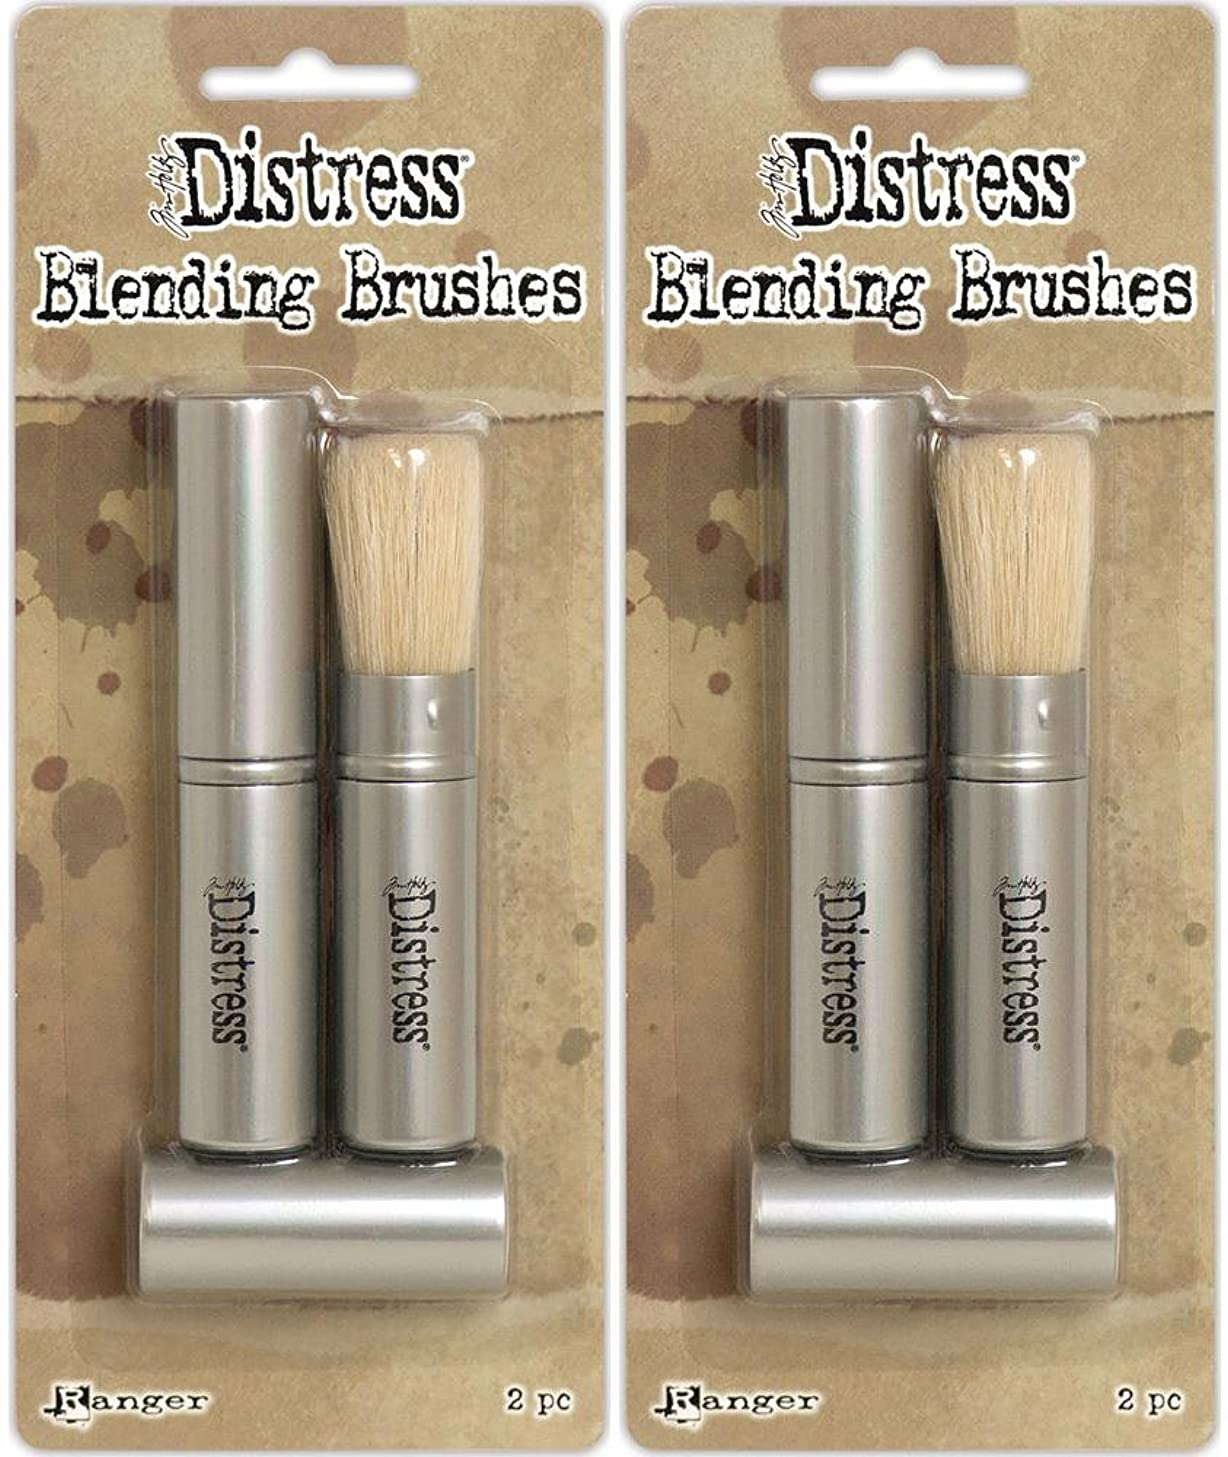 Tim Holtz Distress Blending Brushes - Two Packages - 4 Brush Bundle (Original Version)